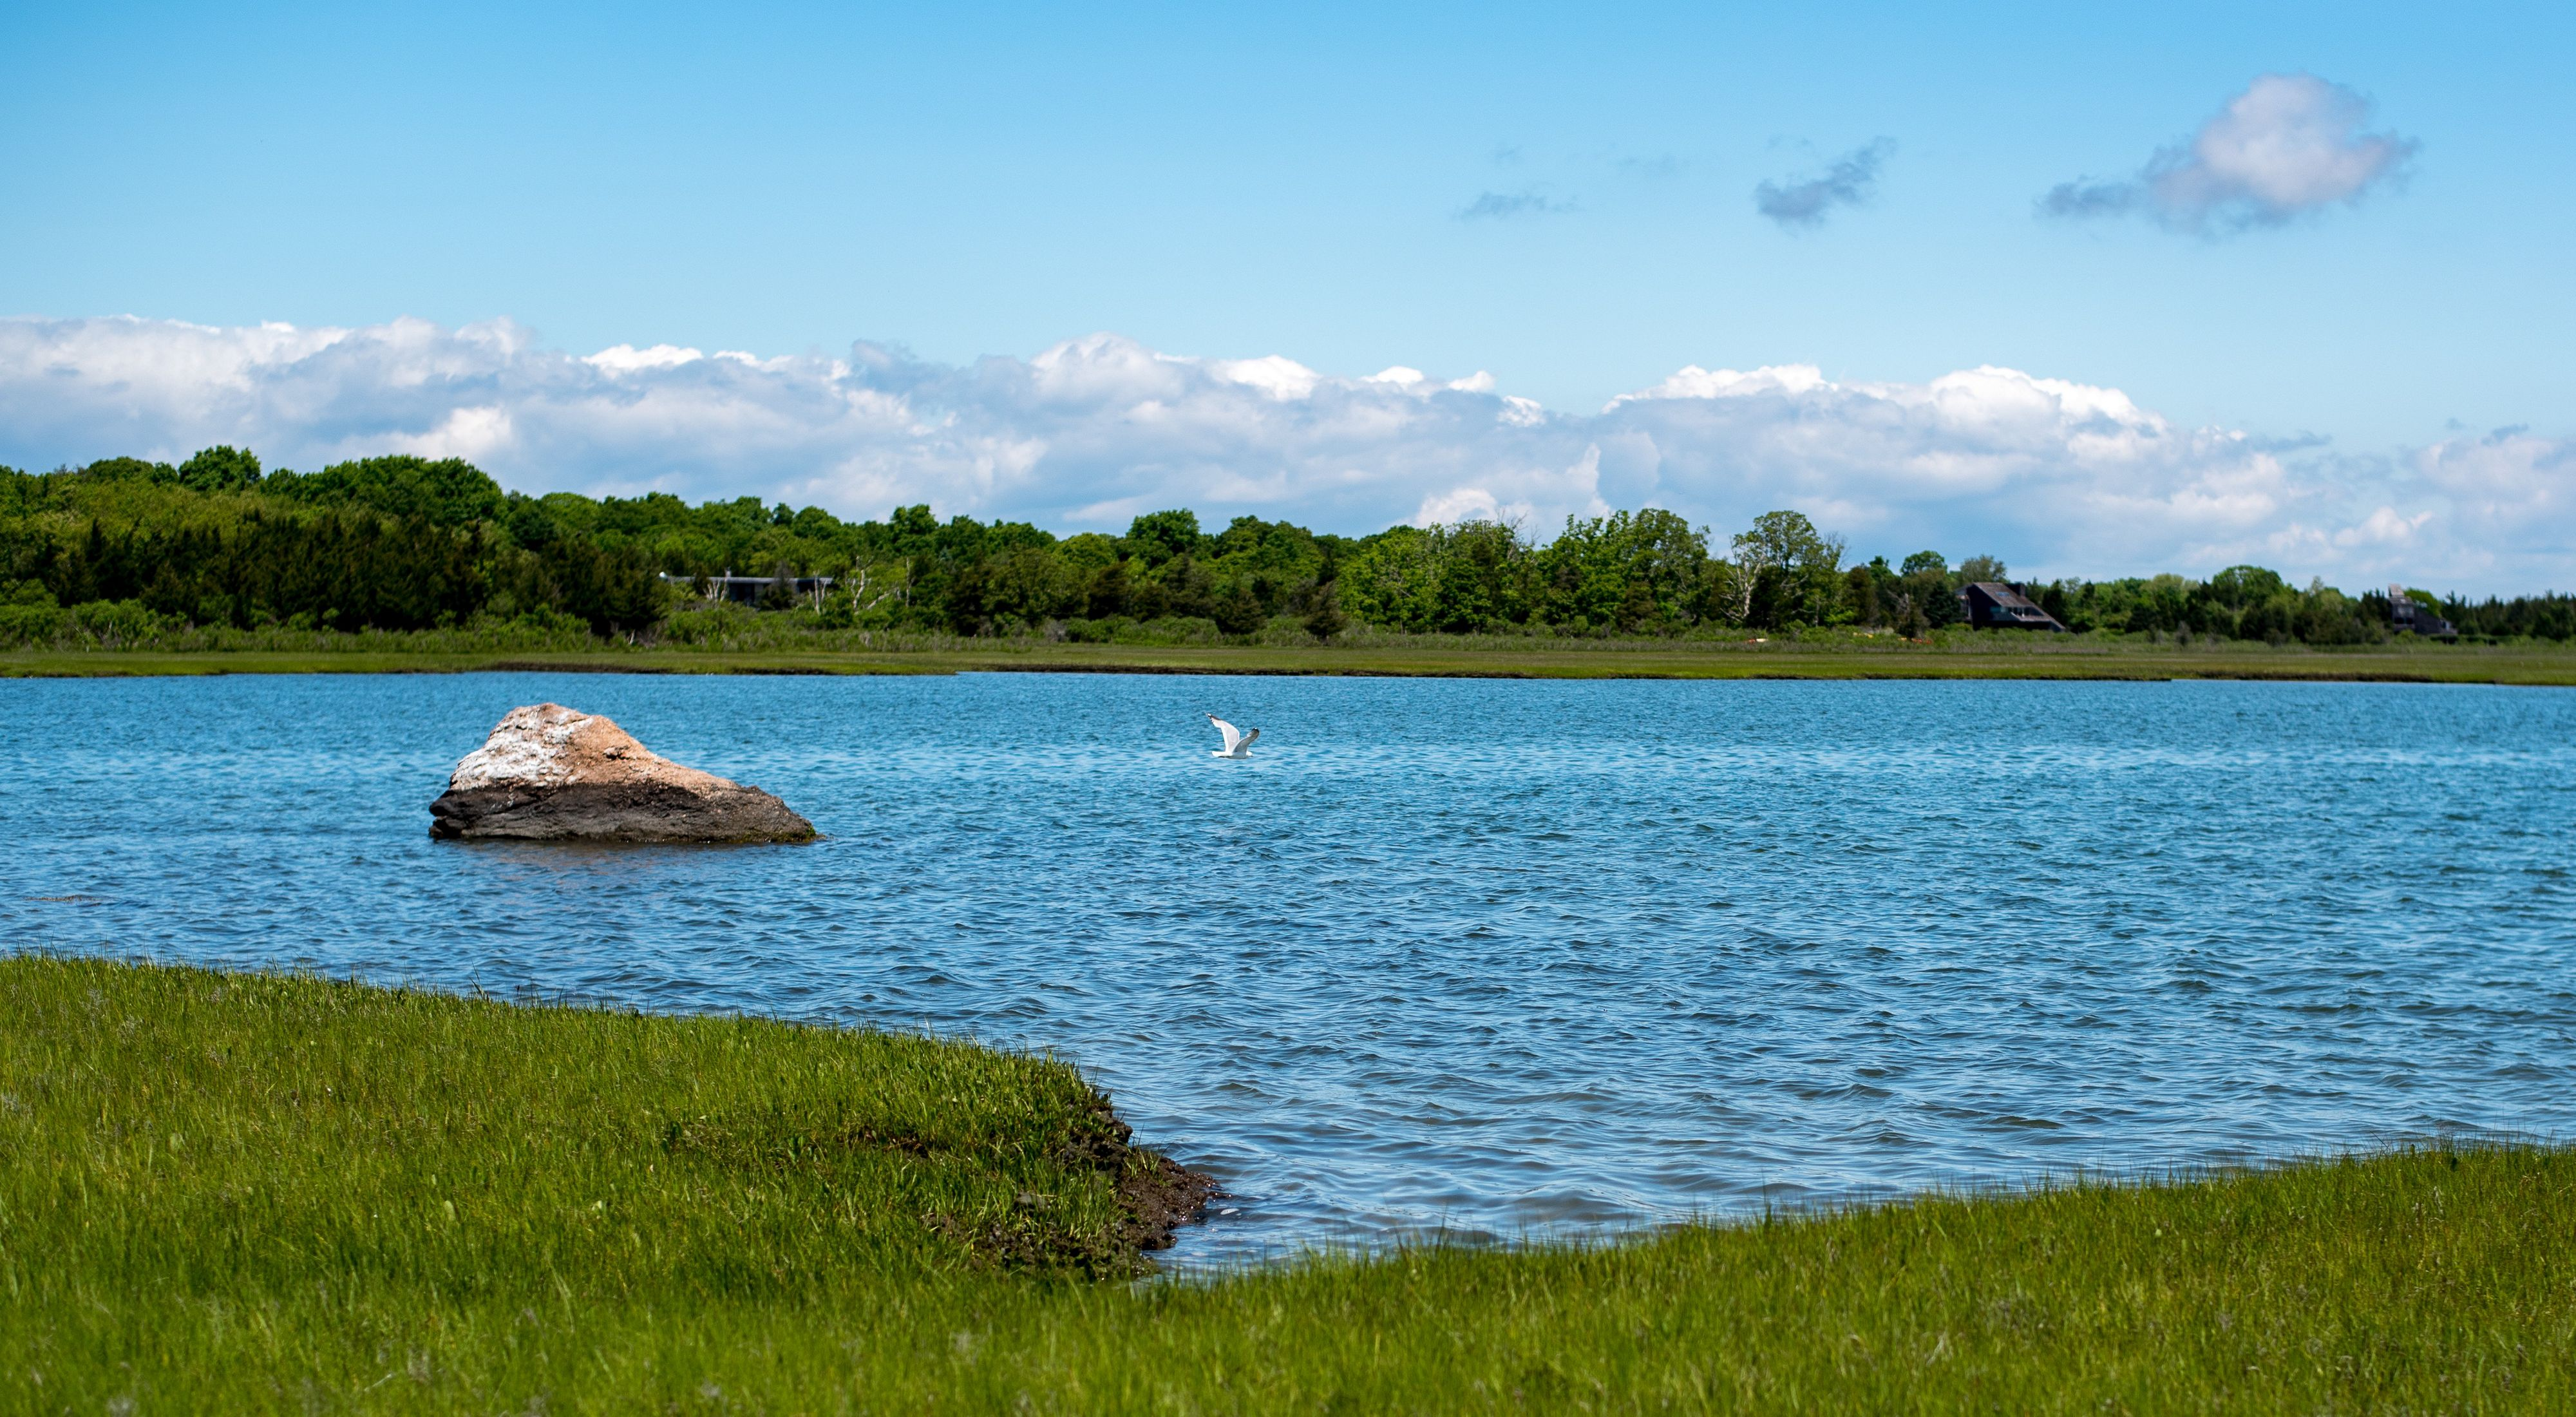 A white bird flies over blue waters surrounding by a green marsh.